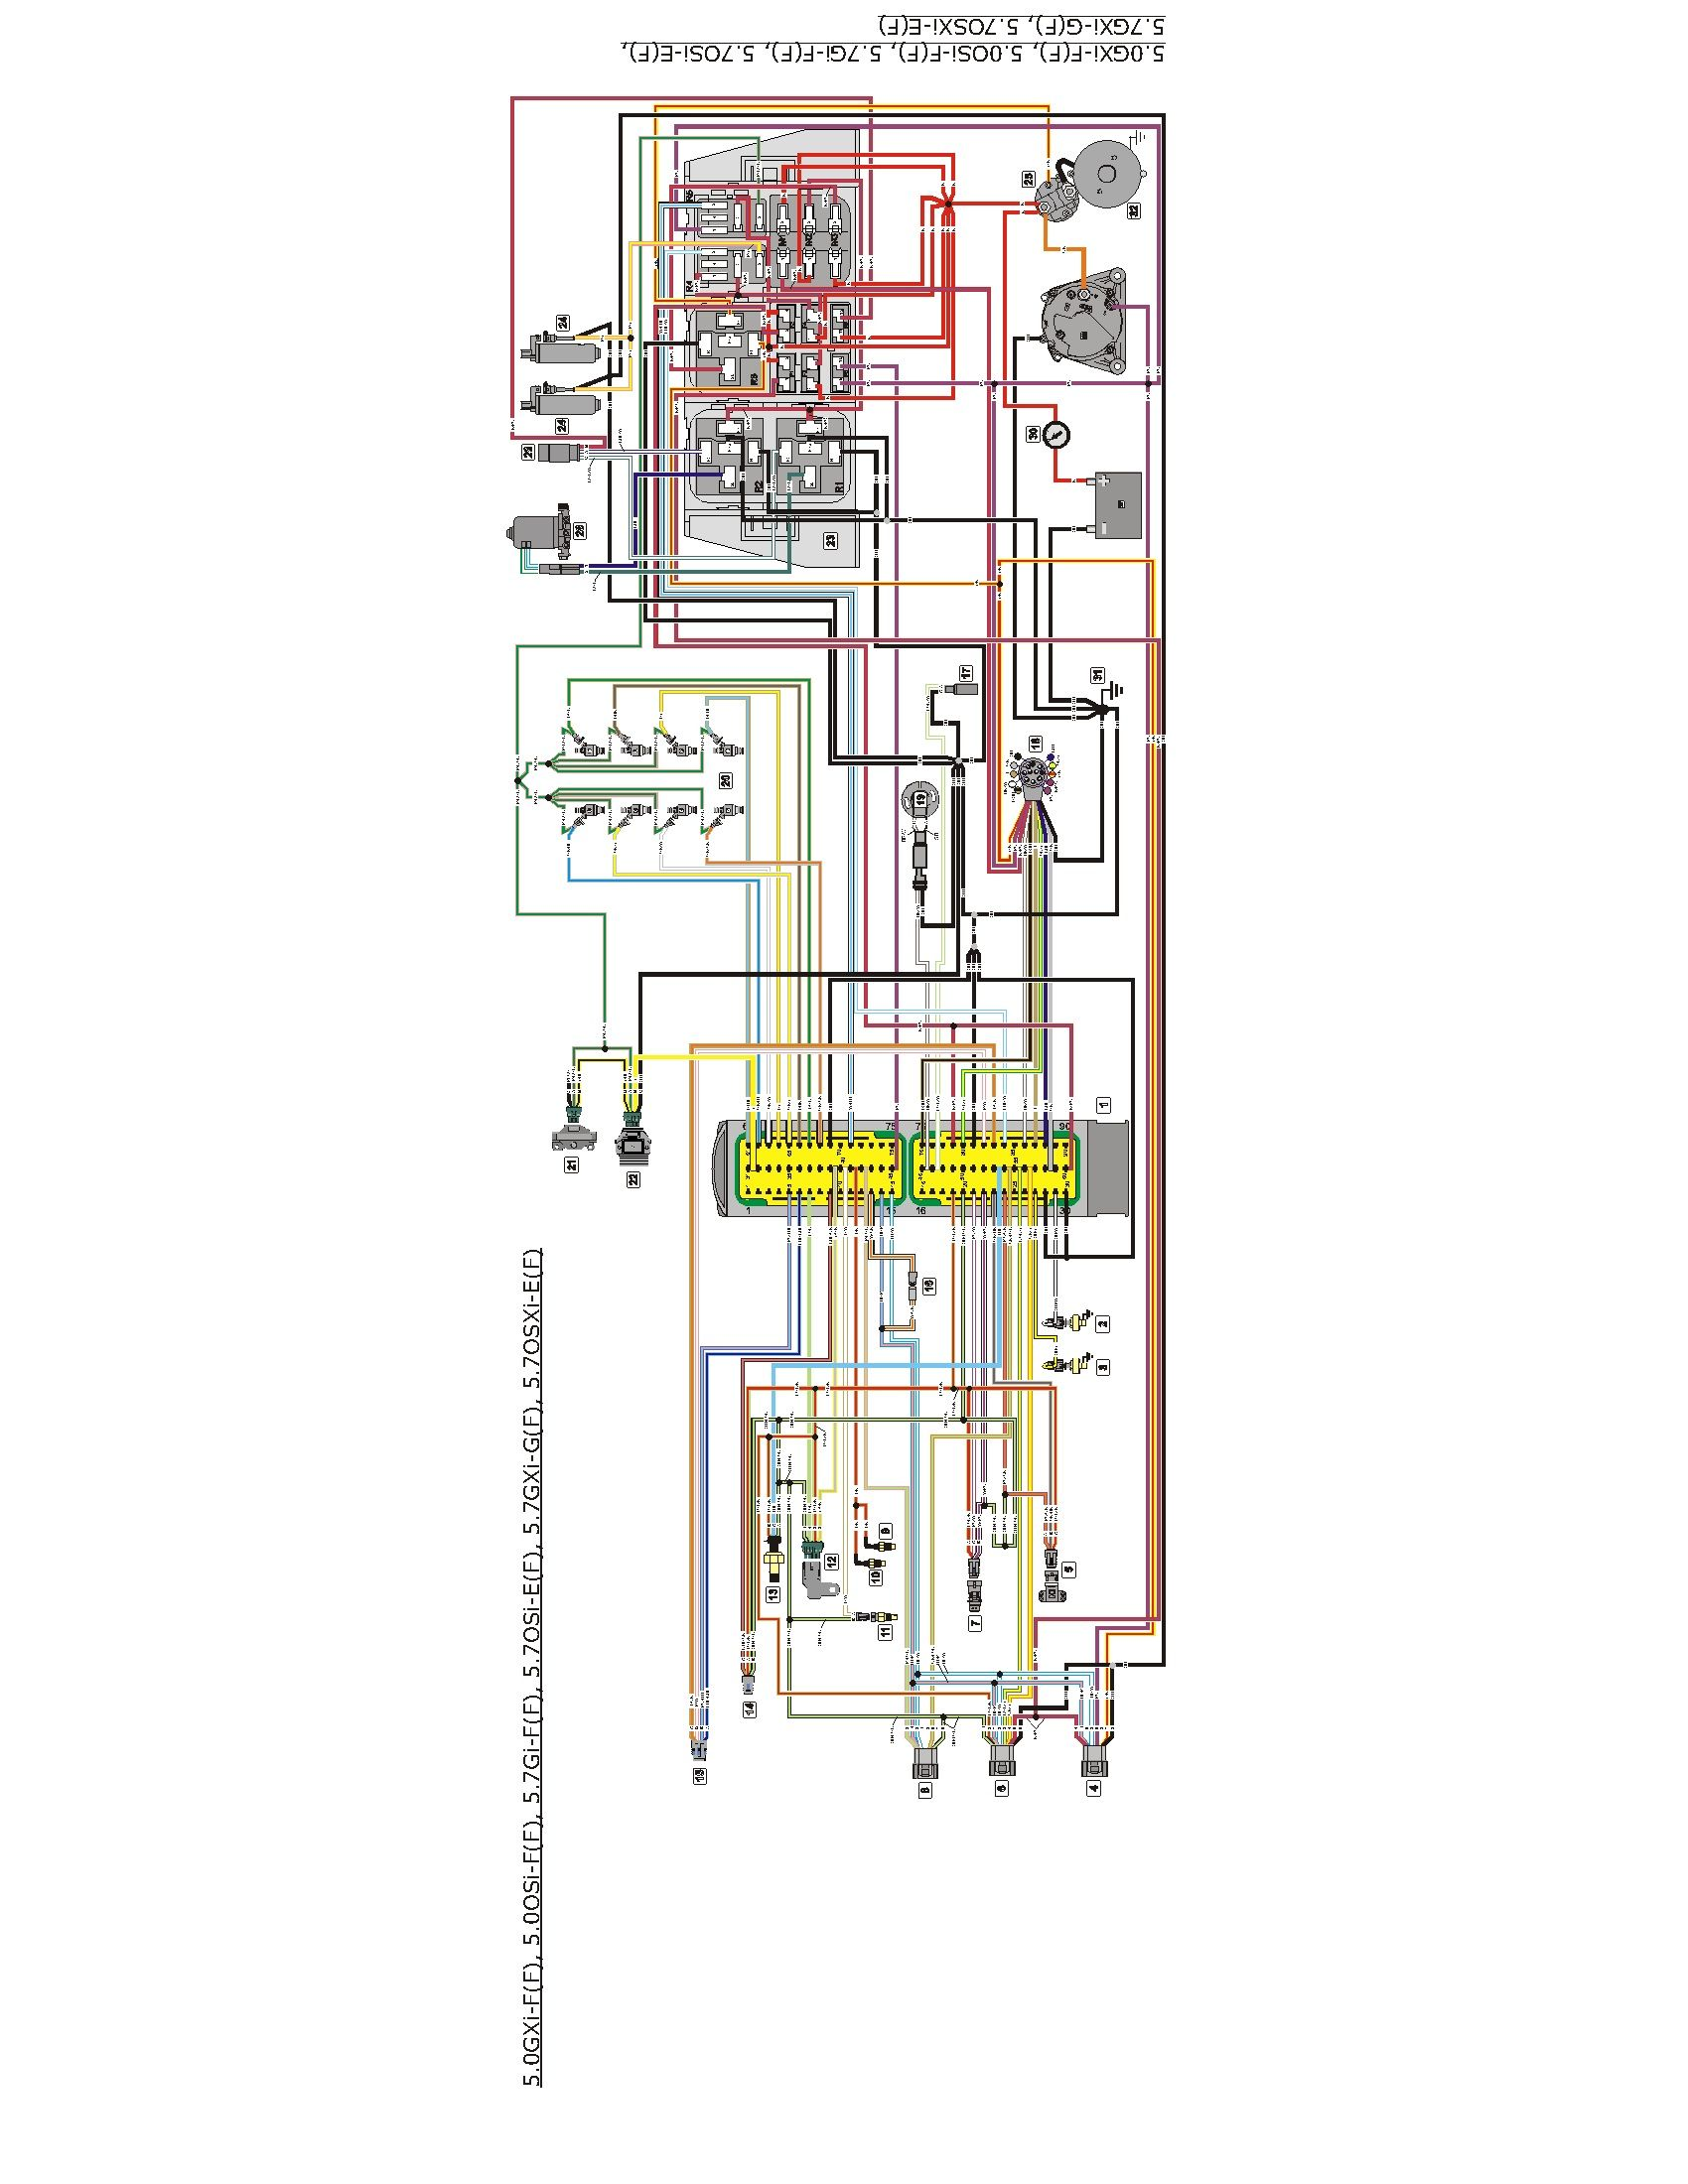 Resultado de imagen para volvo penta 5.0 gxi wiring diagram | Volvo,  Trailer light wiring, Diagram | Volvo Penta Wire Harness Diagram |  | Pinterest